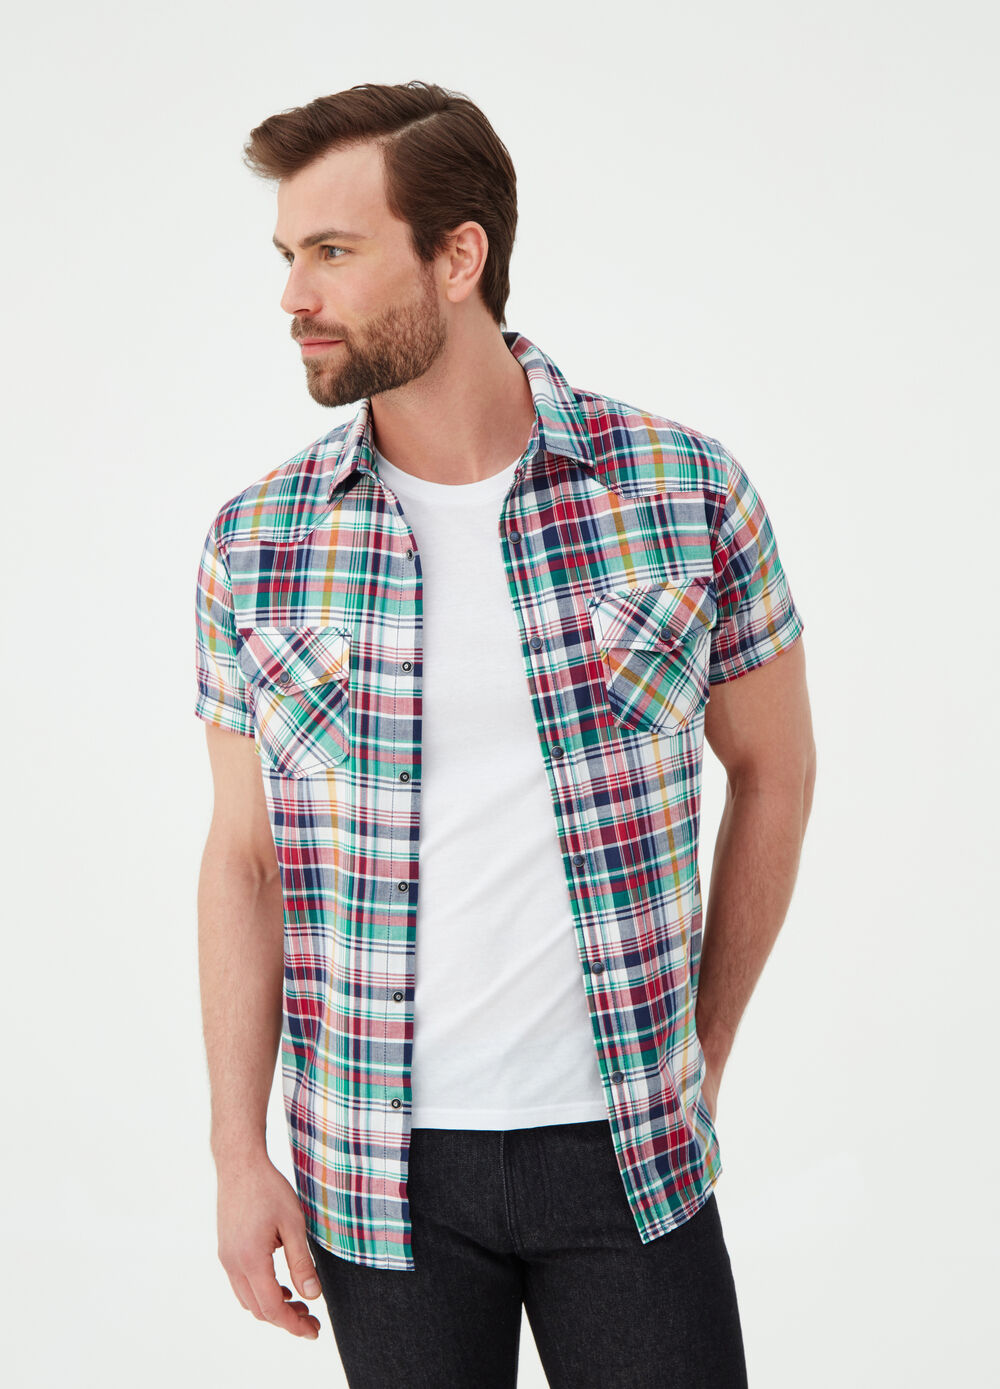 Slim-fit shirt with madras check pattern